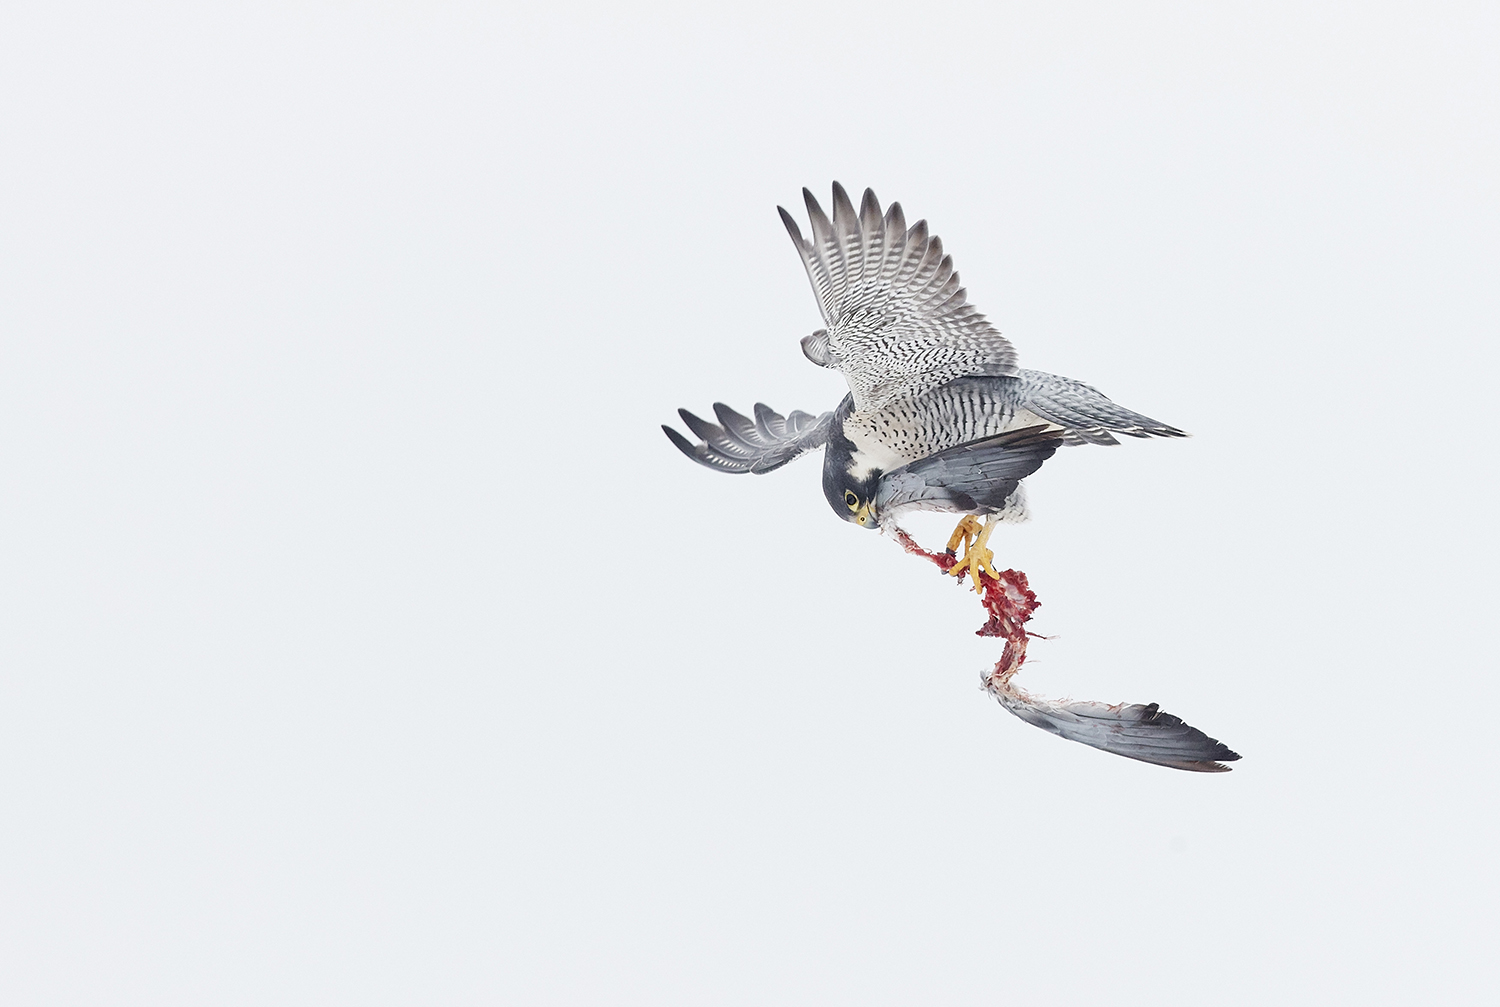 Peregrine's lunch. Peregrine's lunch